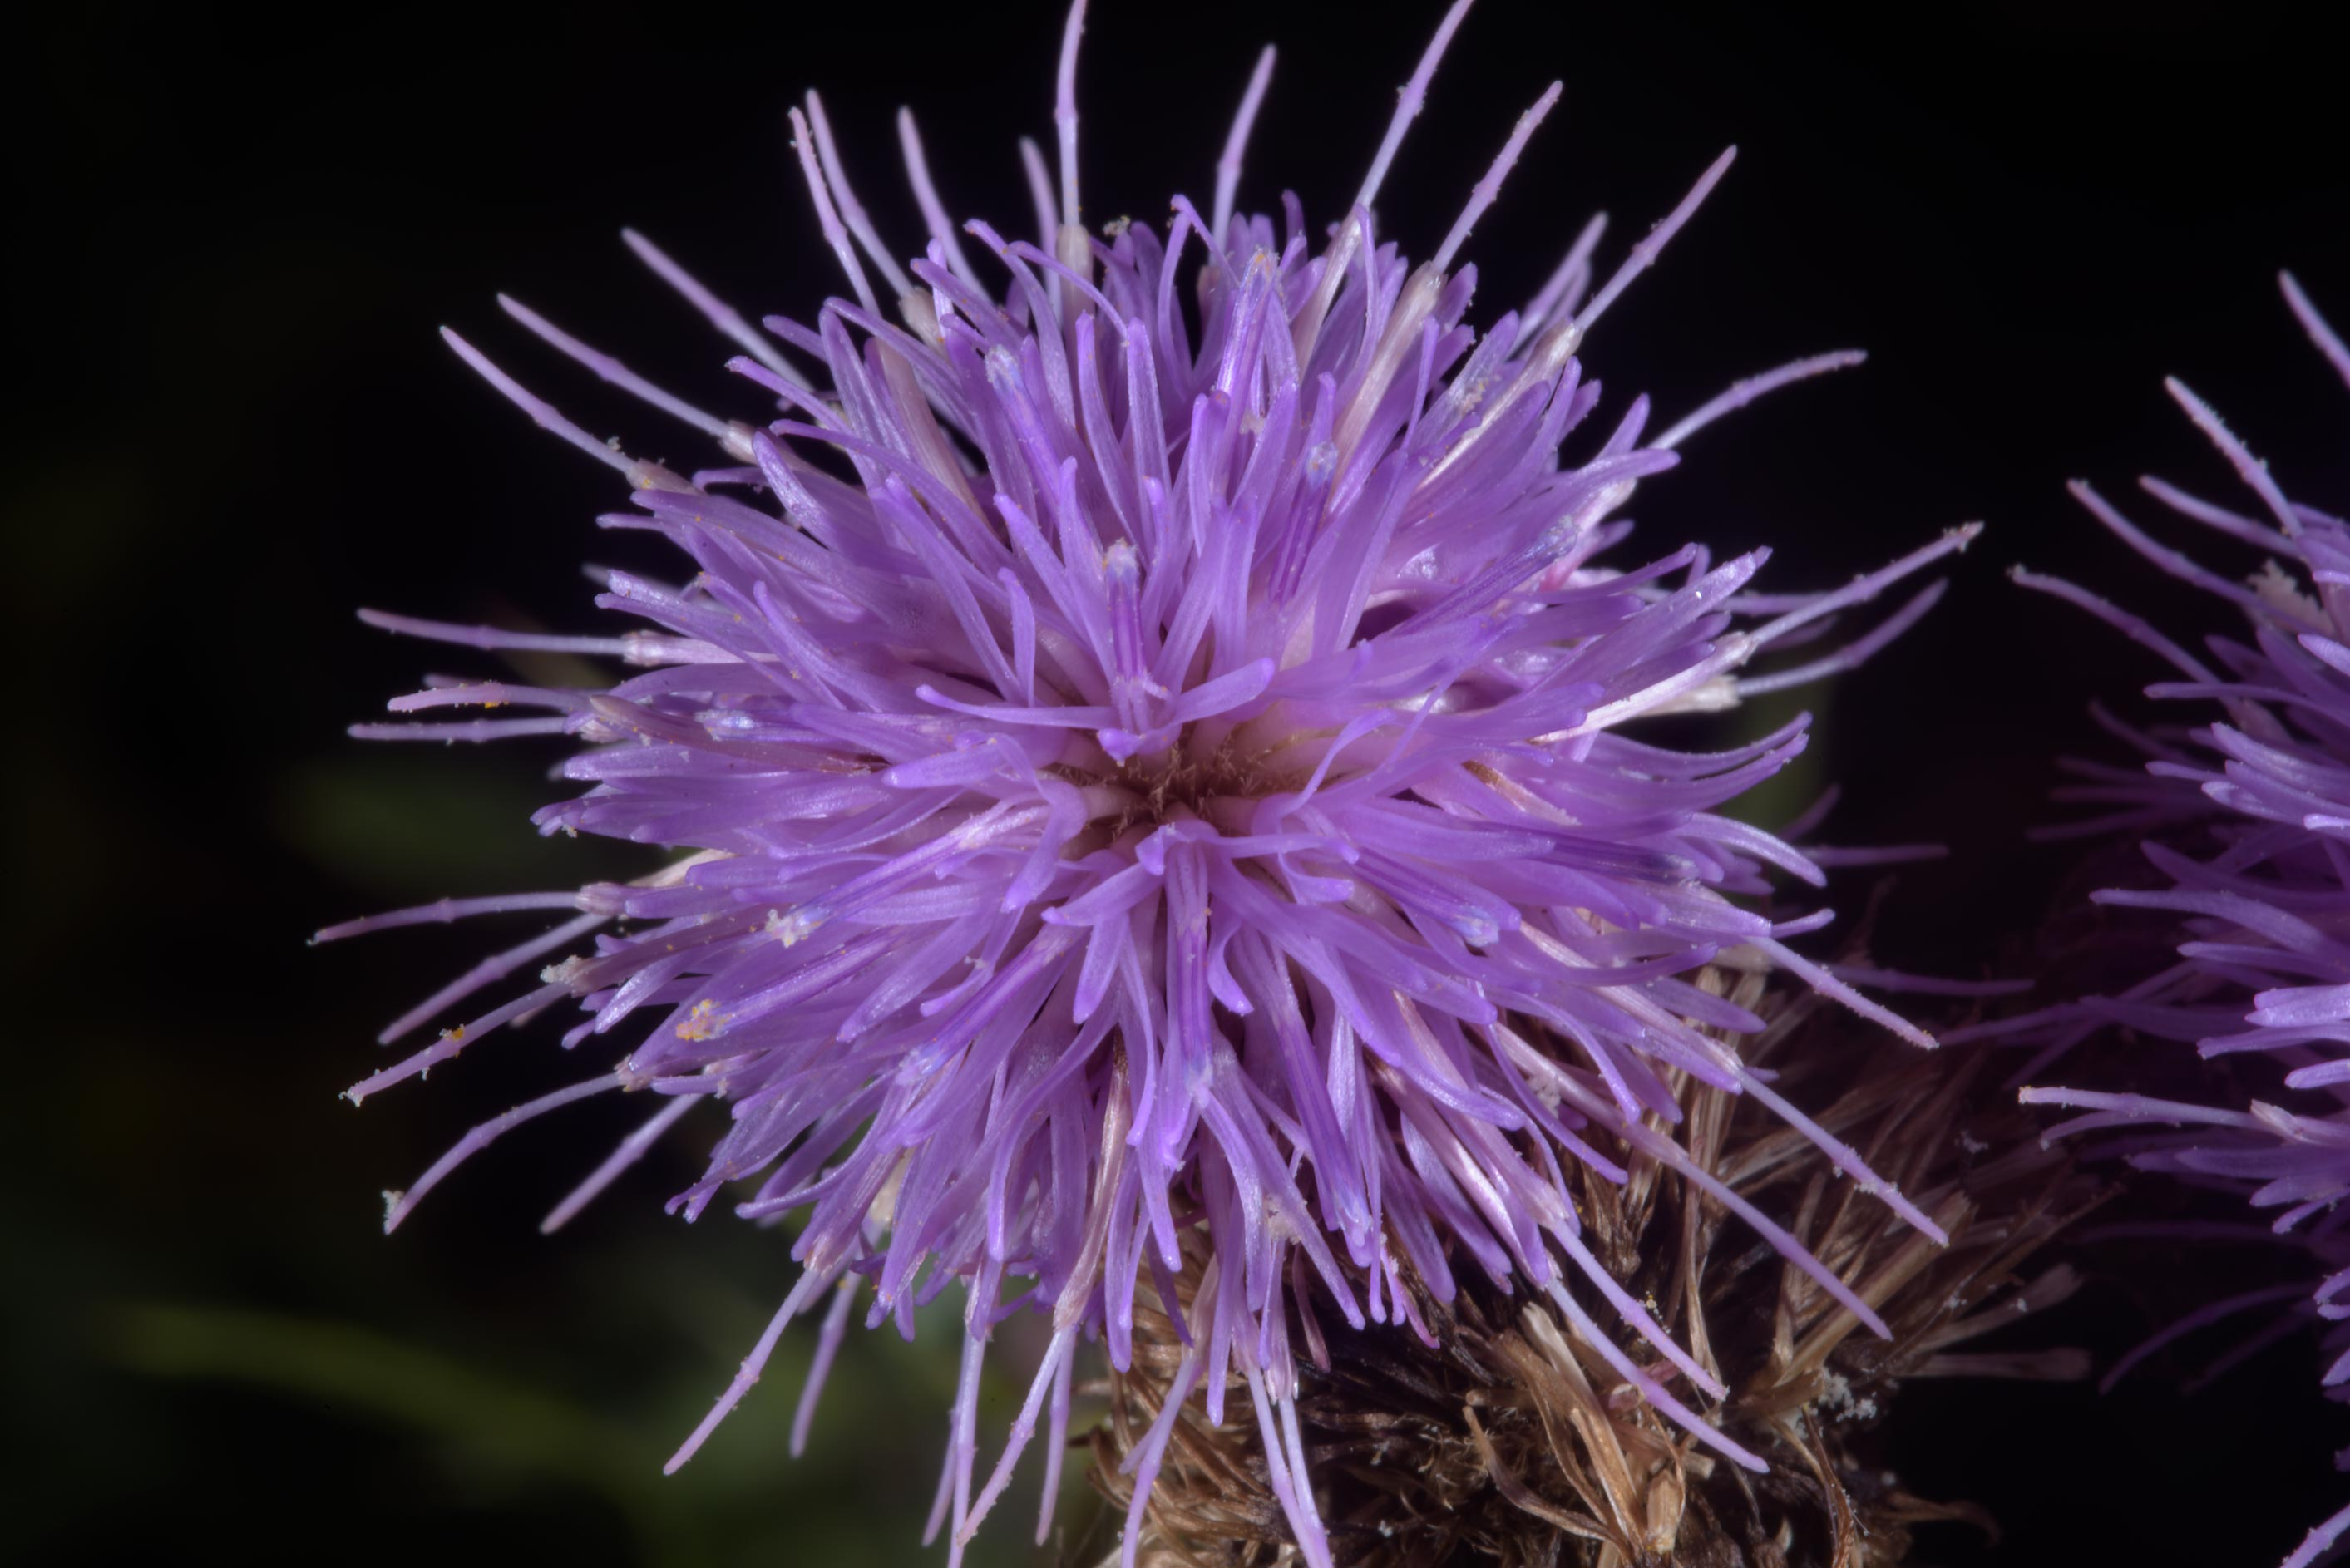 Flower of creeping thistle (Cirsium arvense...in northern St.Petersburg. Russia